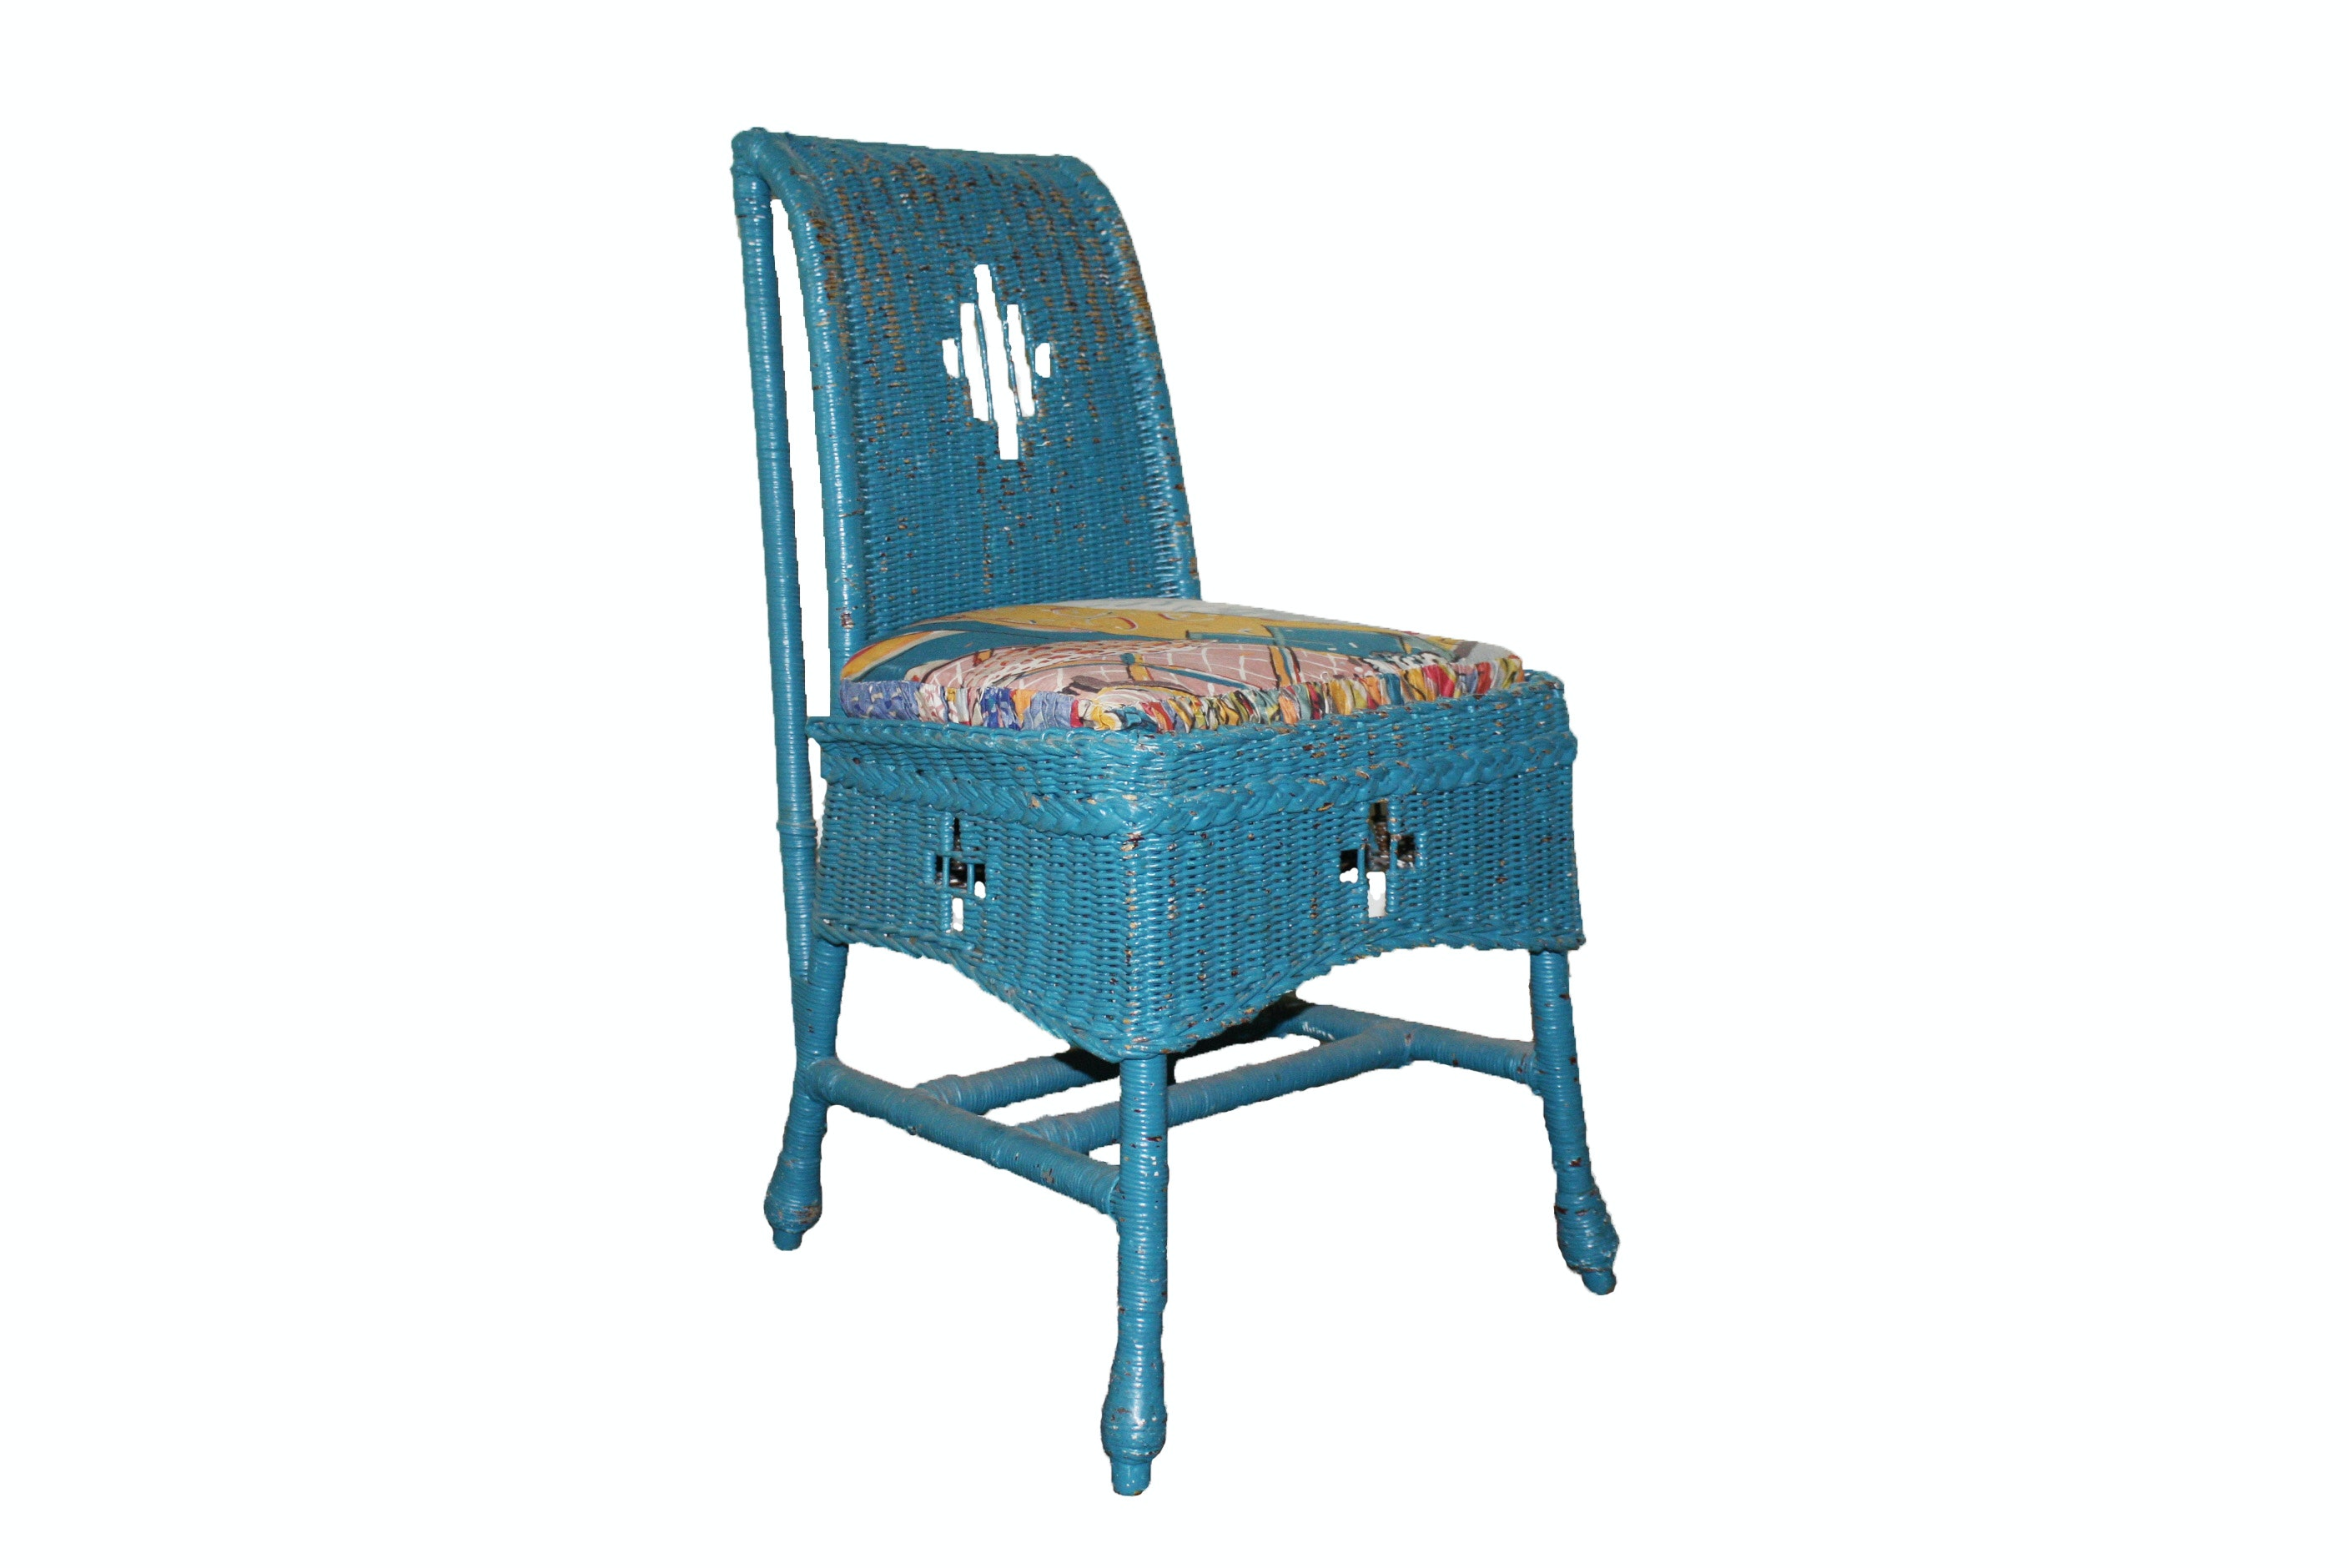 Vintage Blue Wicker Chair by Kaltex